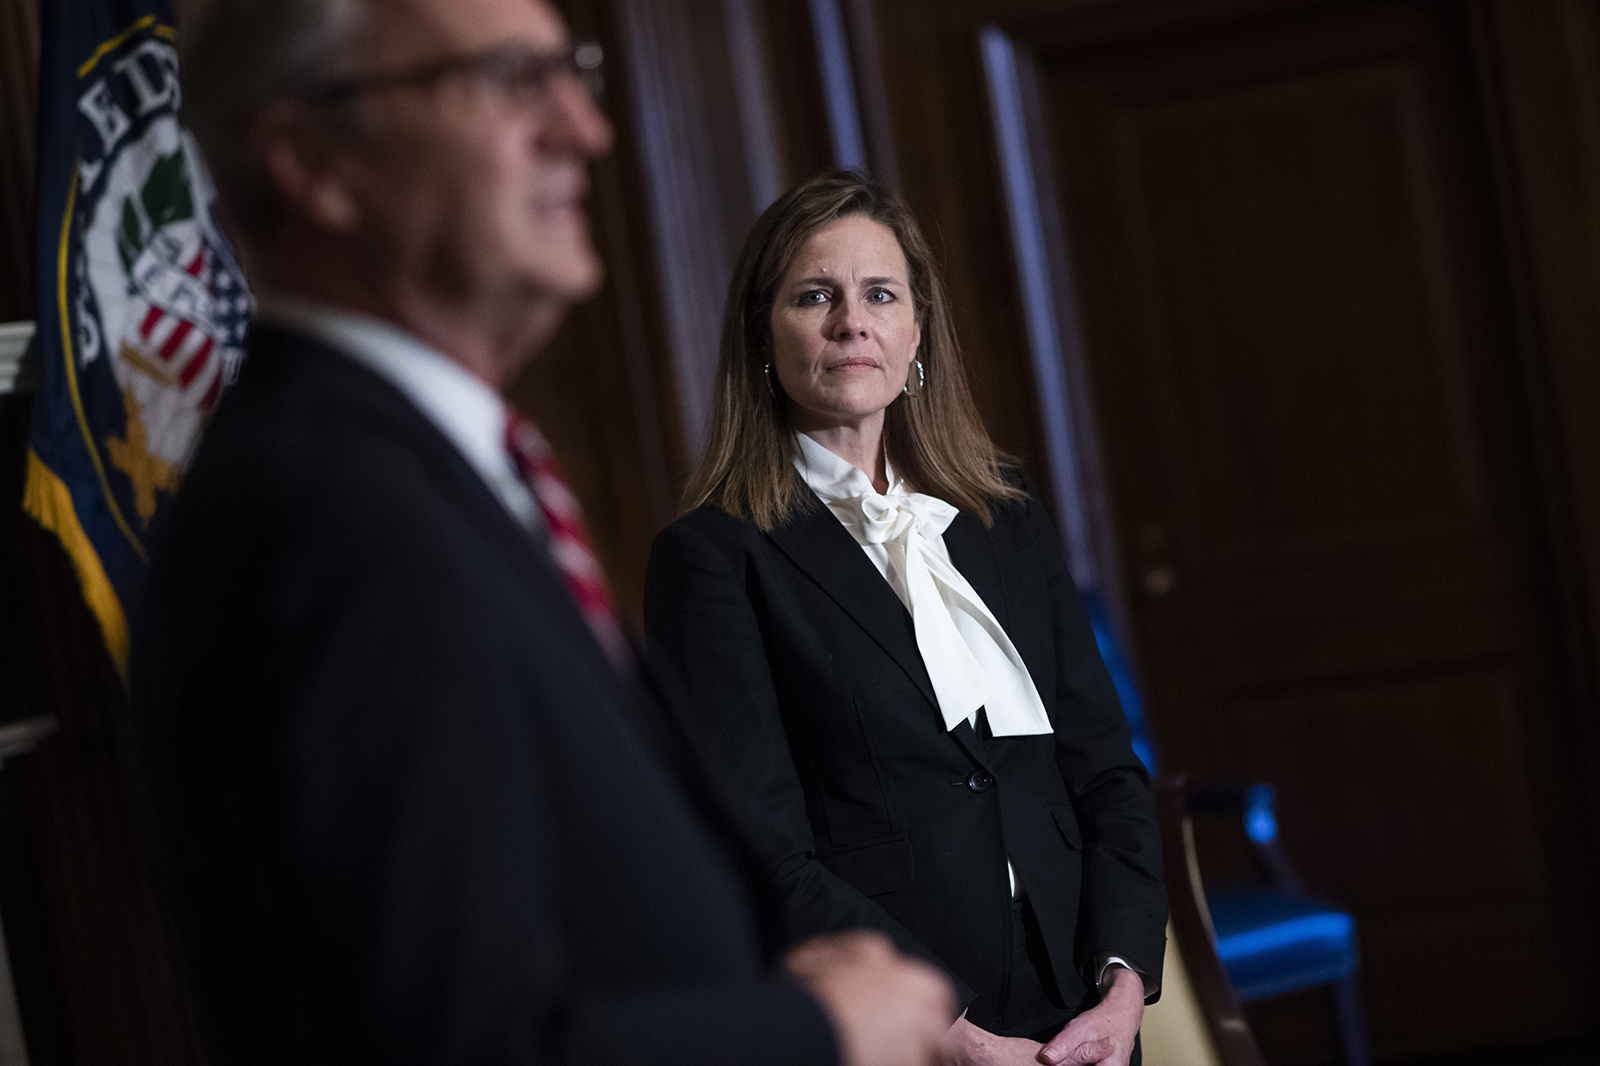 Seventh U.S. Circuit Court Judge Amy Coney Barrett, President Trump's pick for the Supreme Court, meets with Sen. Kevin Cramer in the Mansfield Room of the U.S. Capitol on October 1 in Washington.